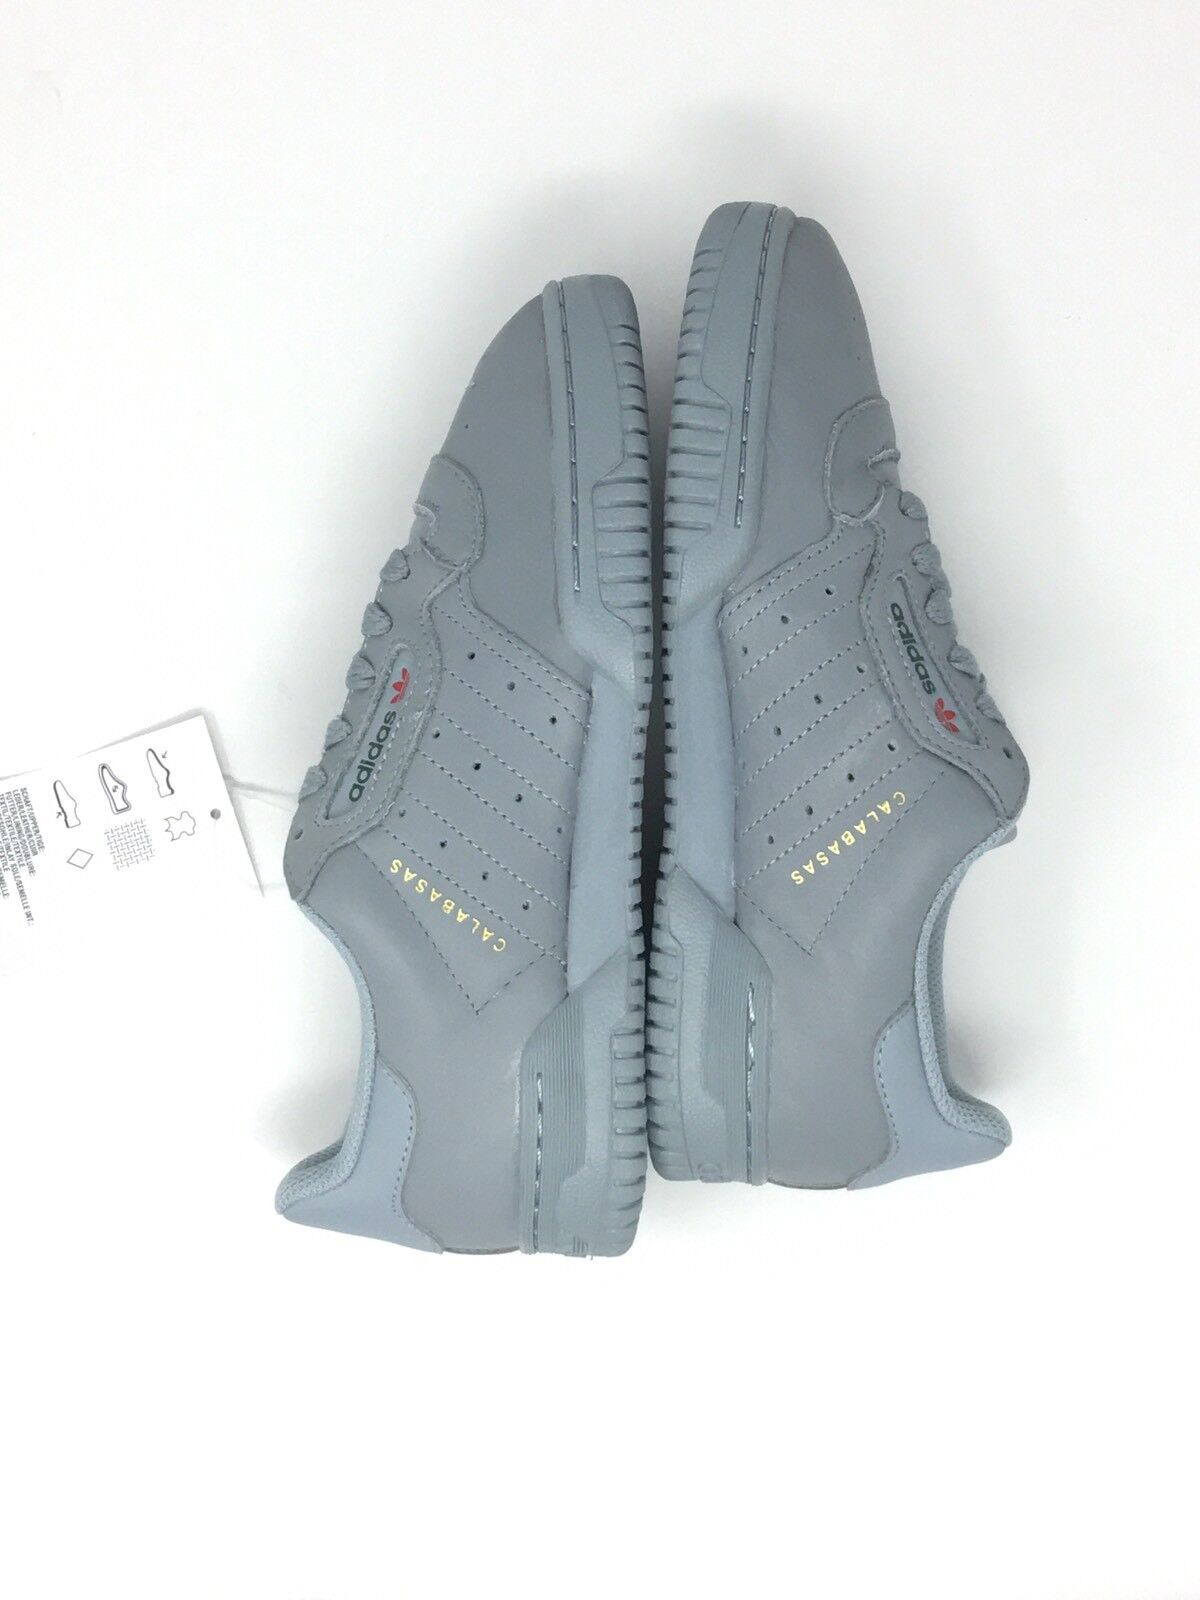 26b51f424238a ... Adidas Yeezy Calabasas Powerphase Grey size 5 NEW DS DS DS CG6422 d5e664